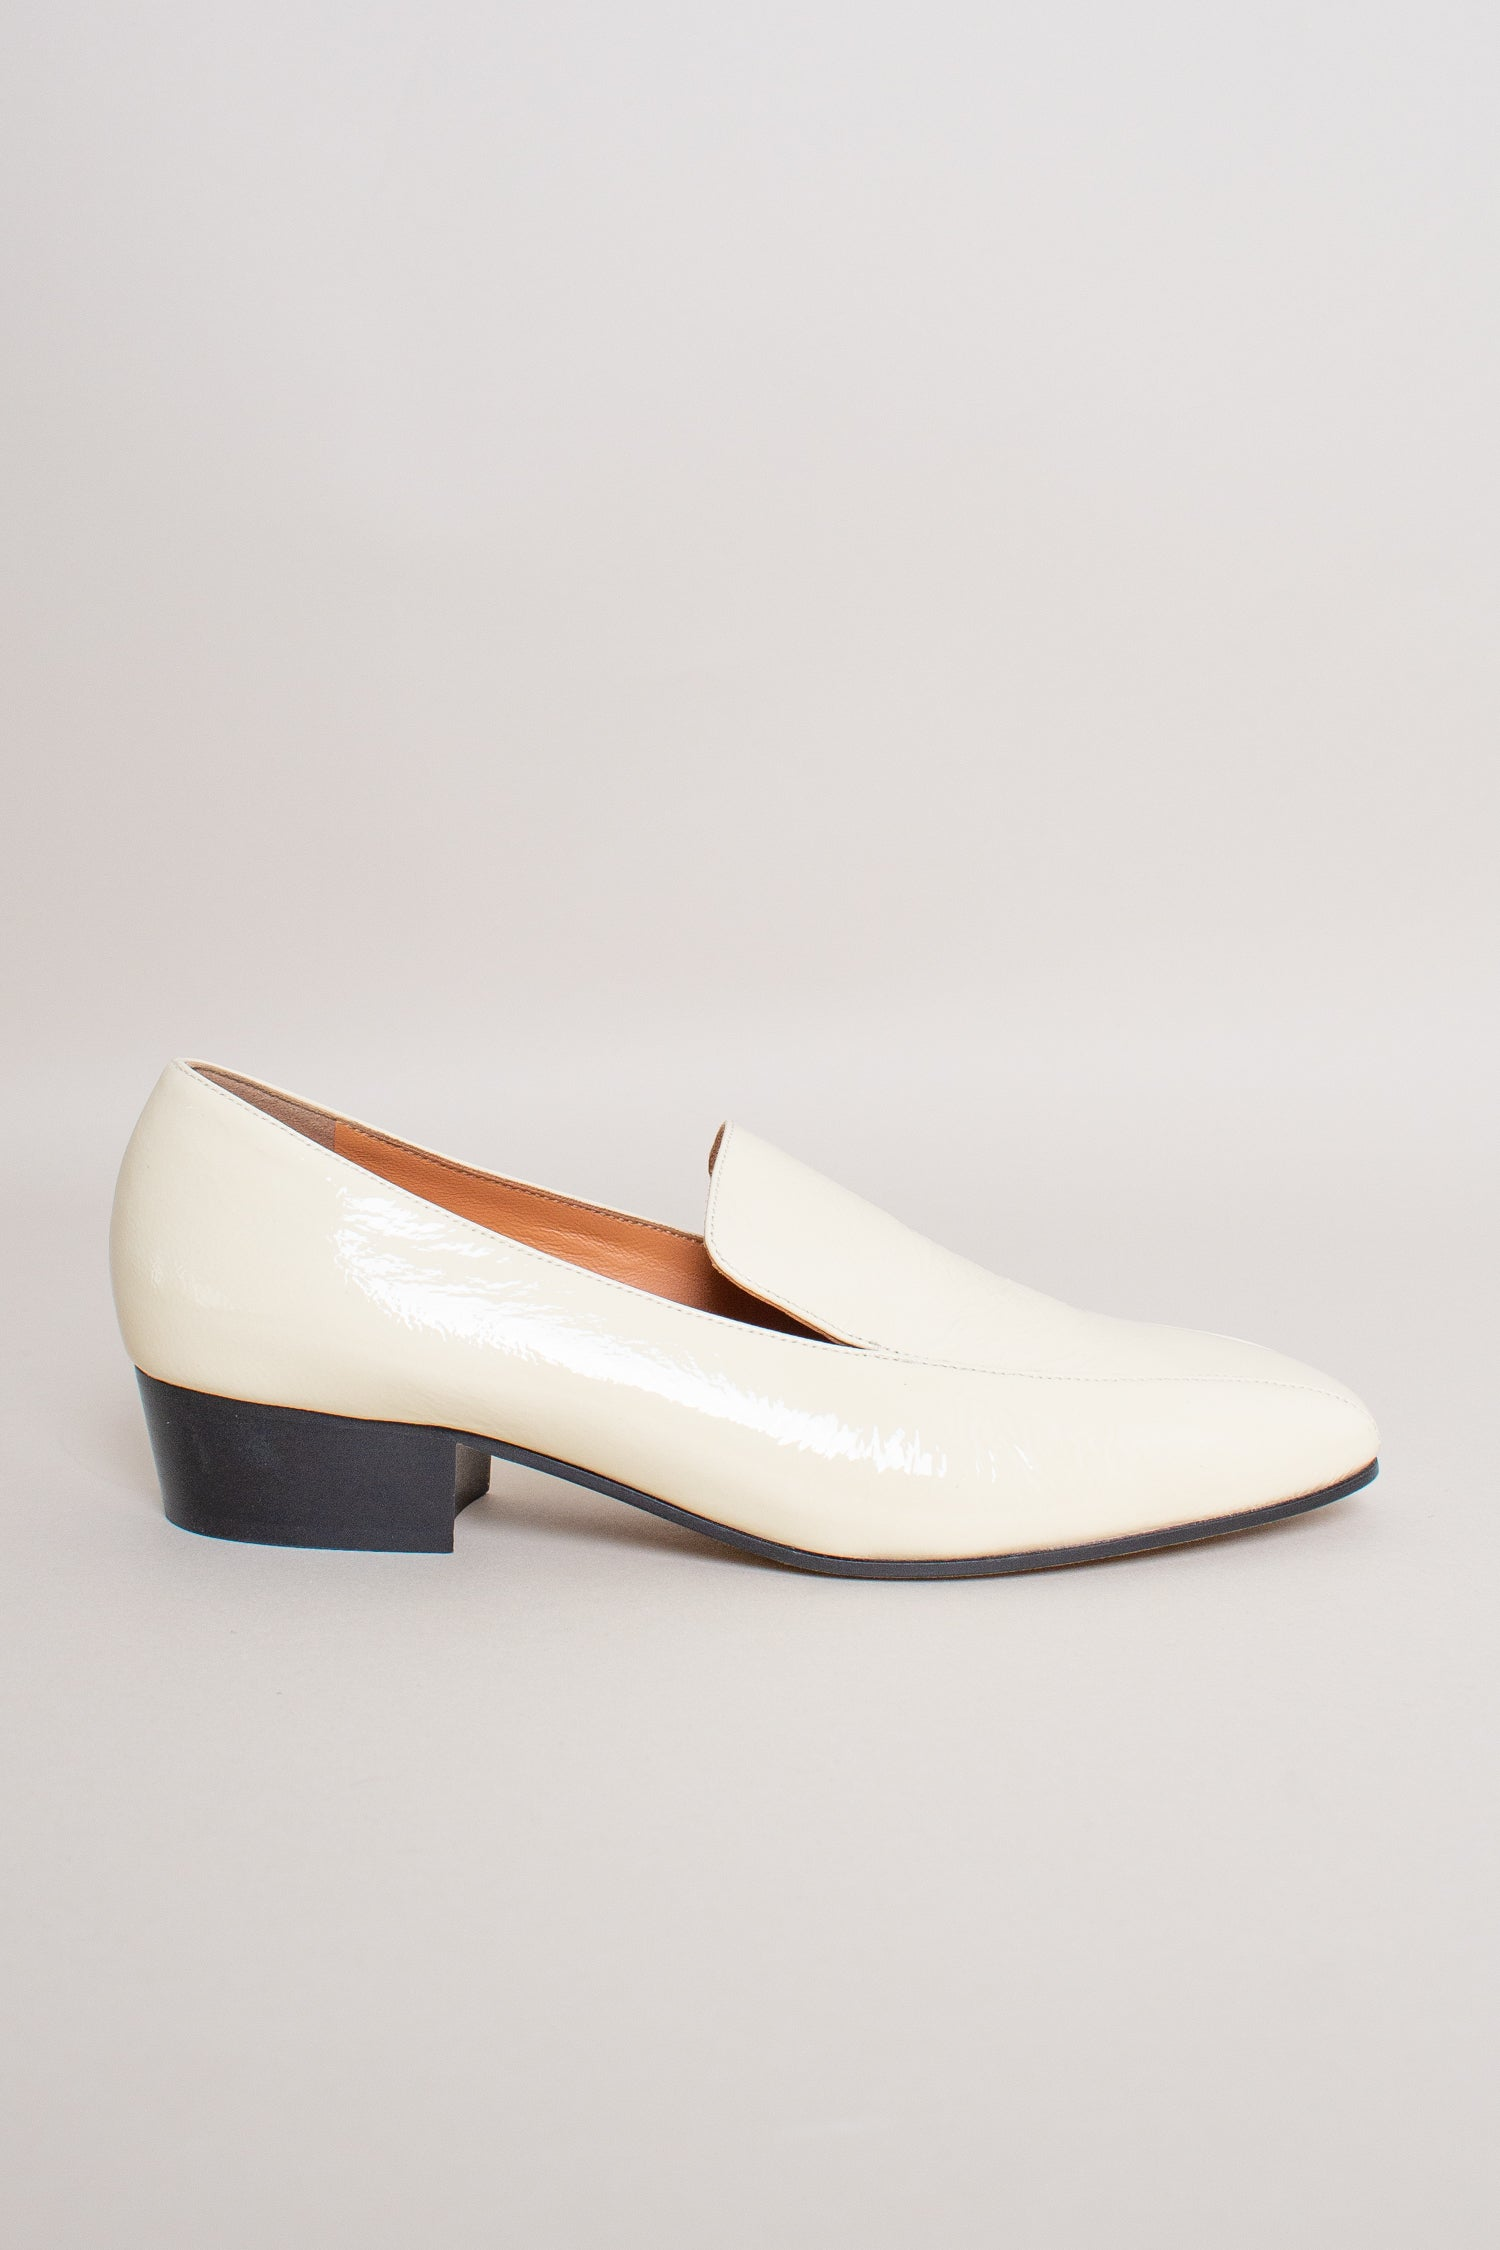 Rachel Comey Cheater Flat in Cream - Vert & Vogue